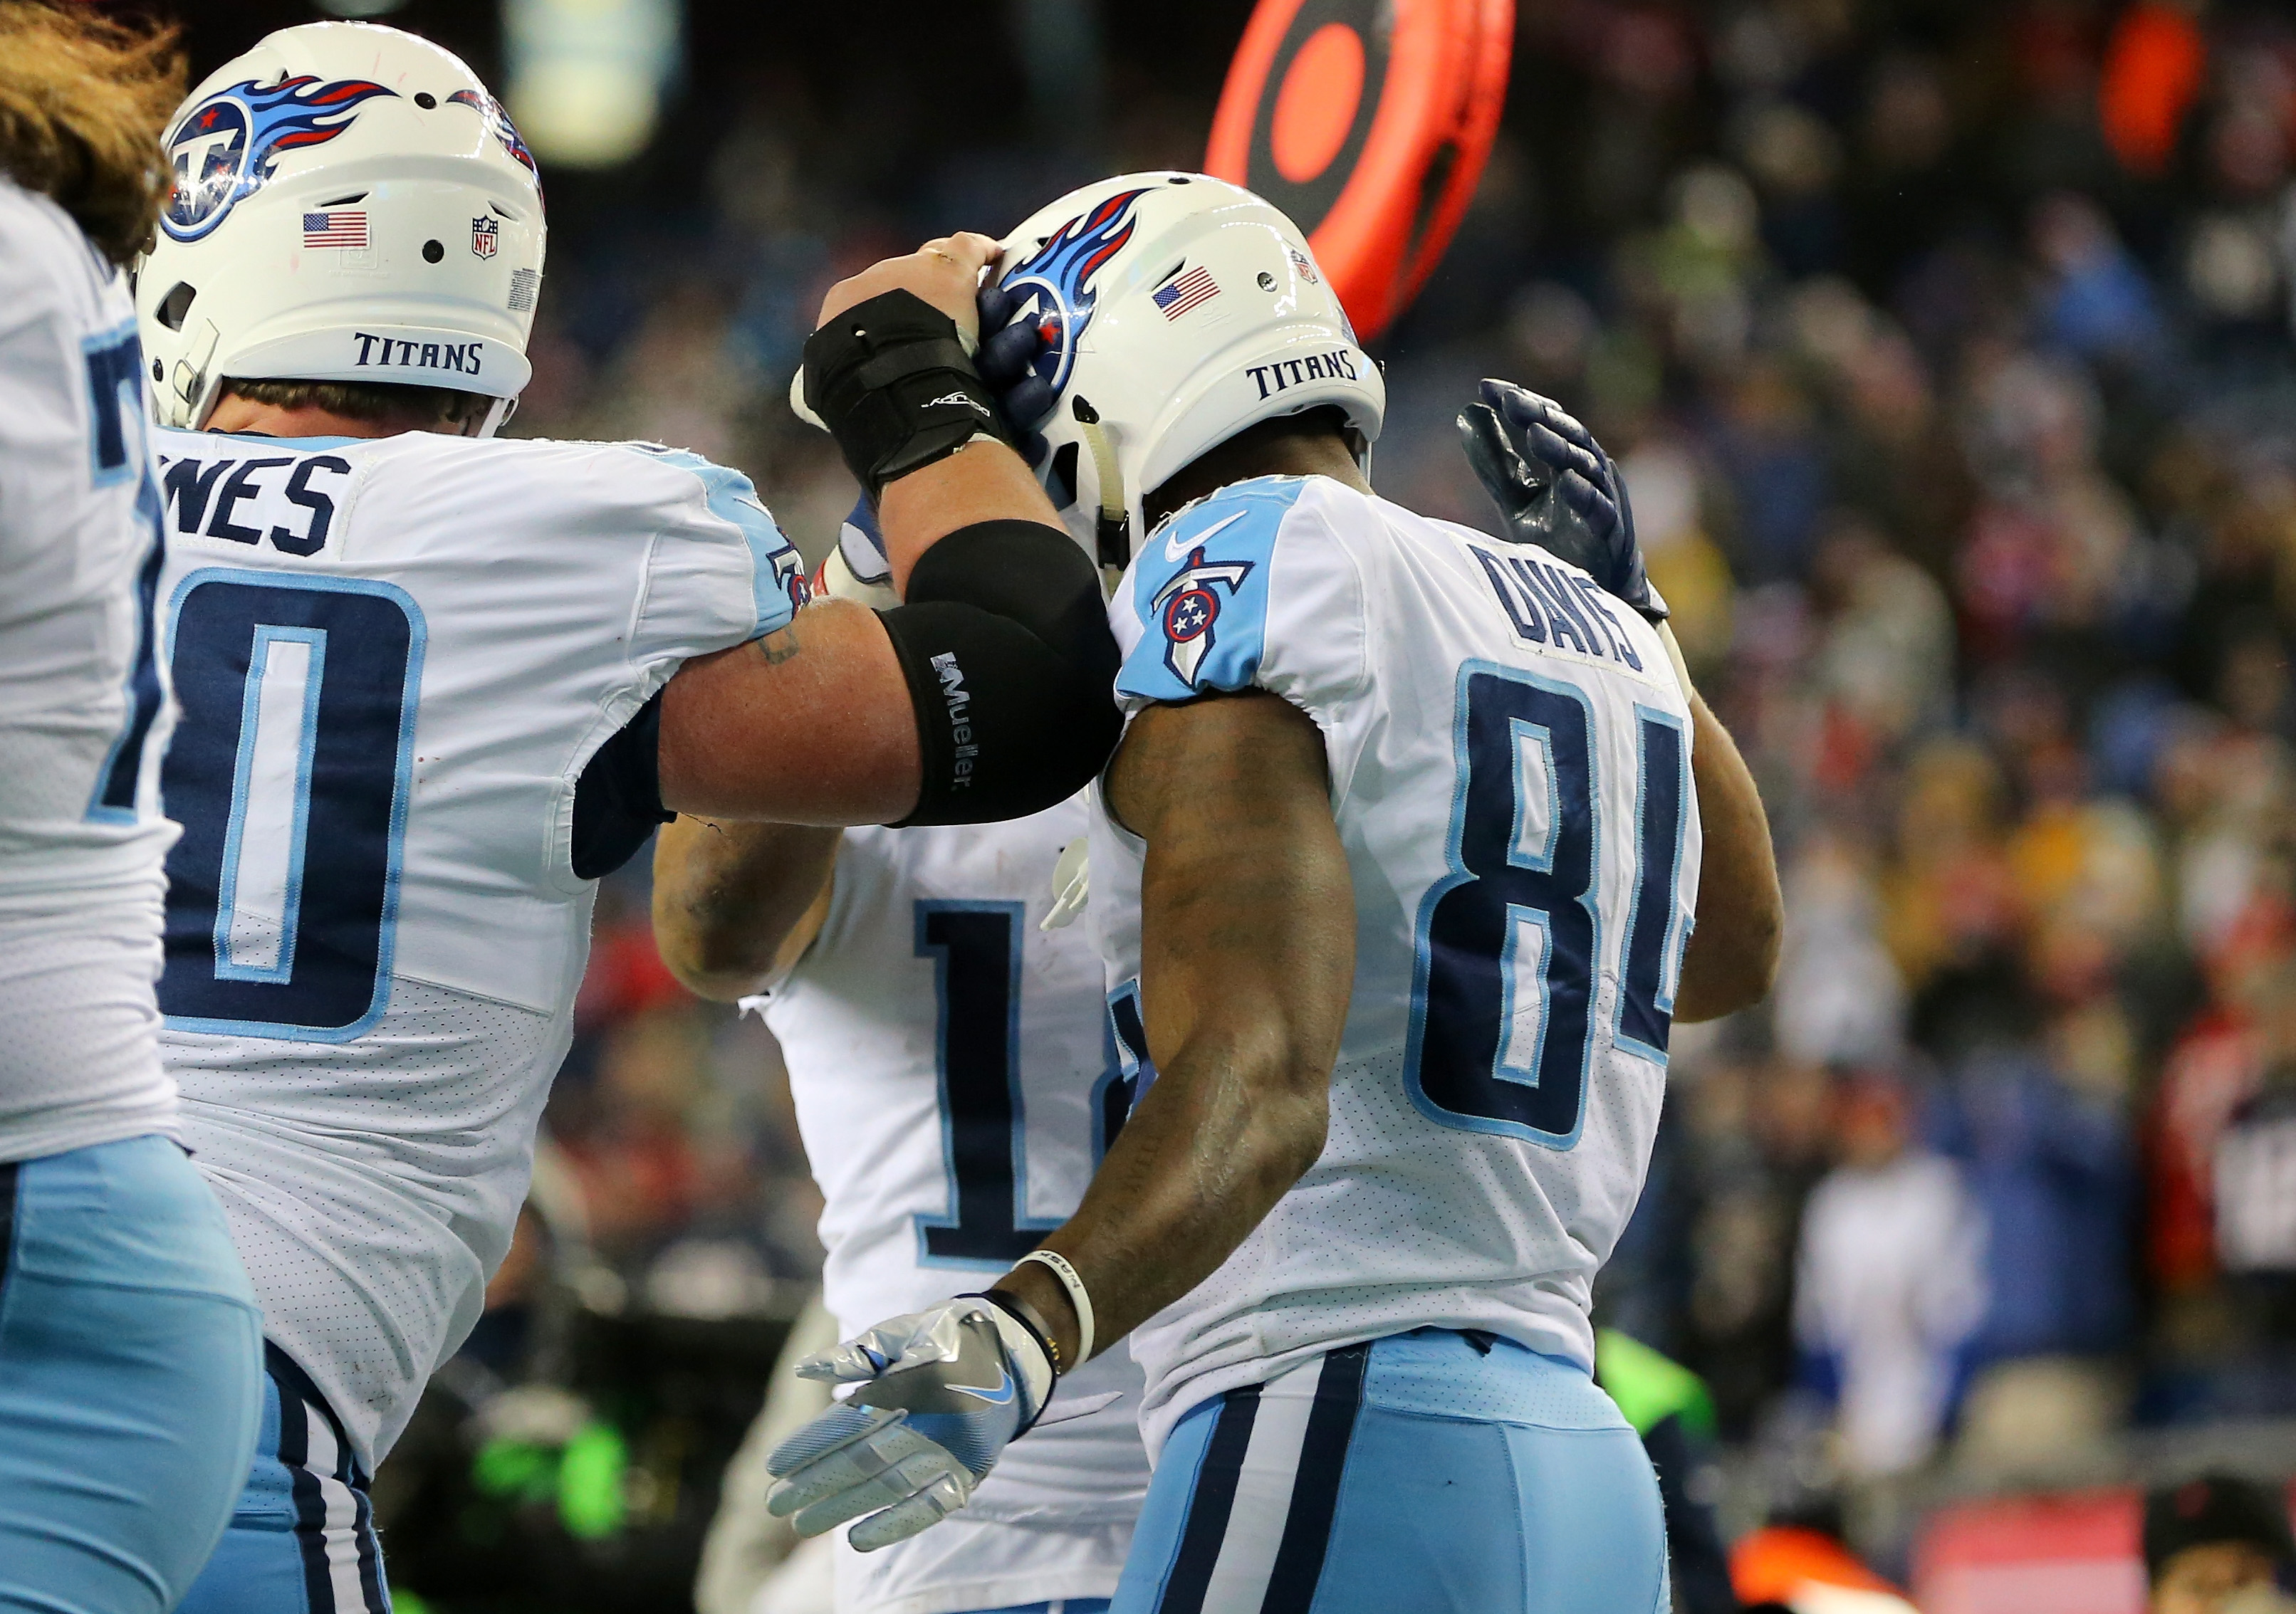 Can the Titans make it to the Super Bowl?